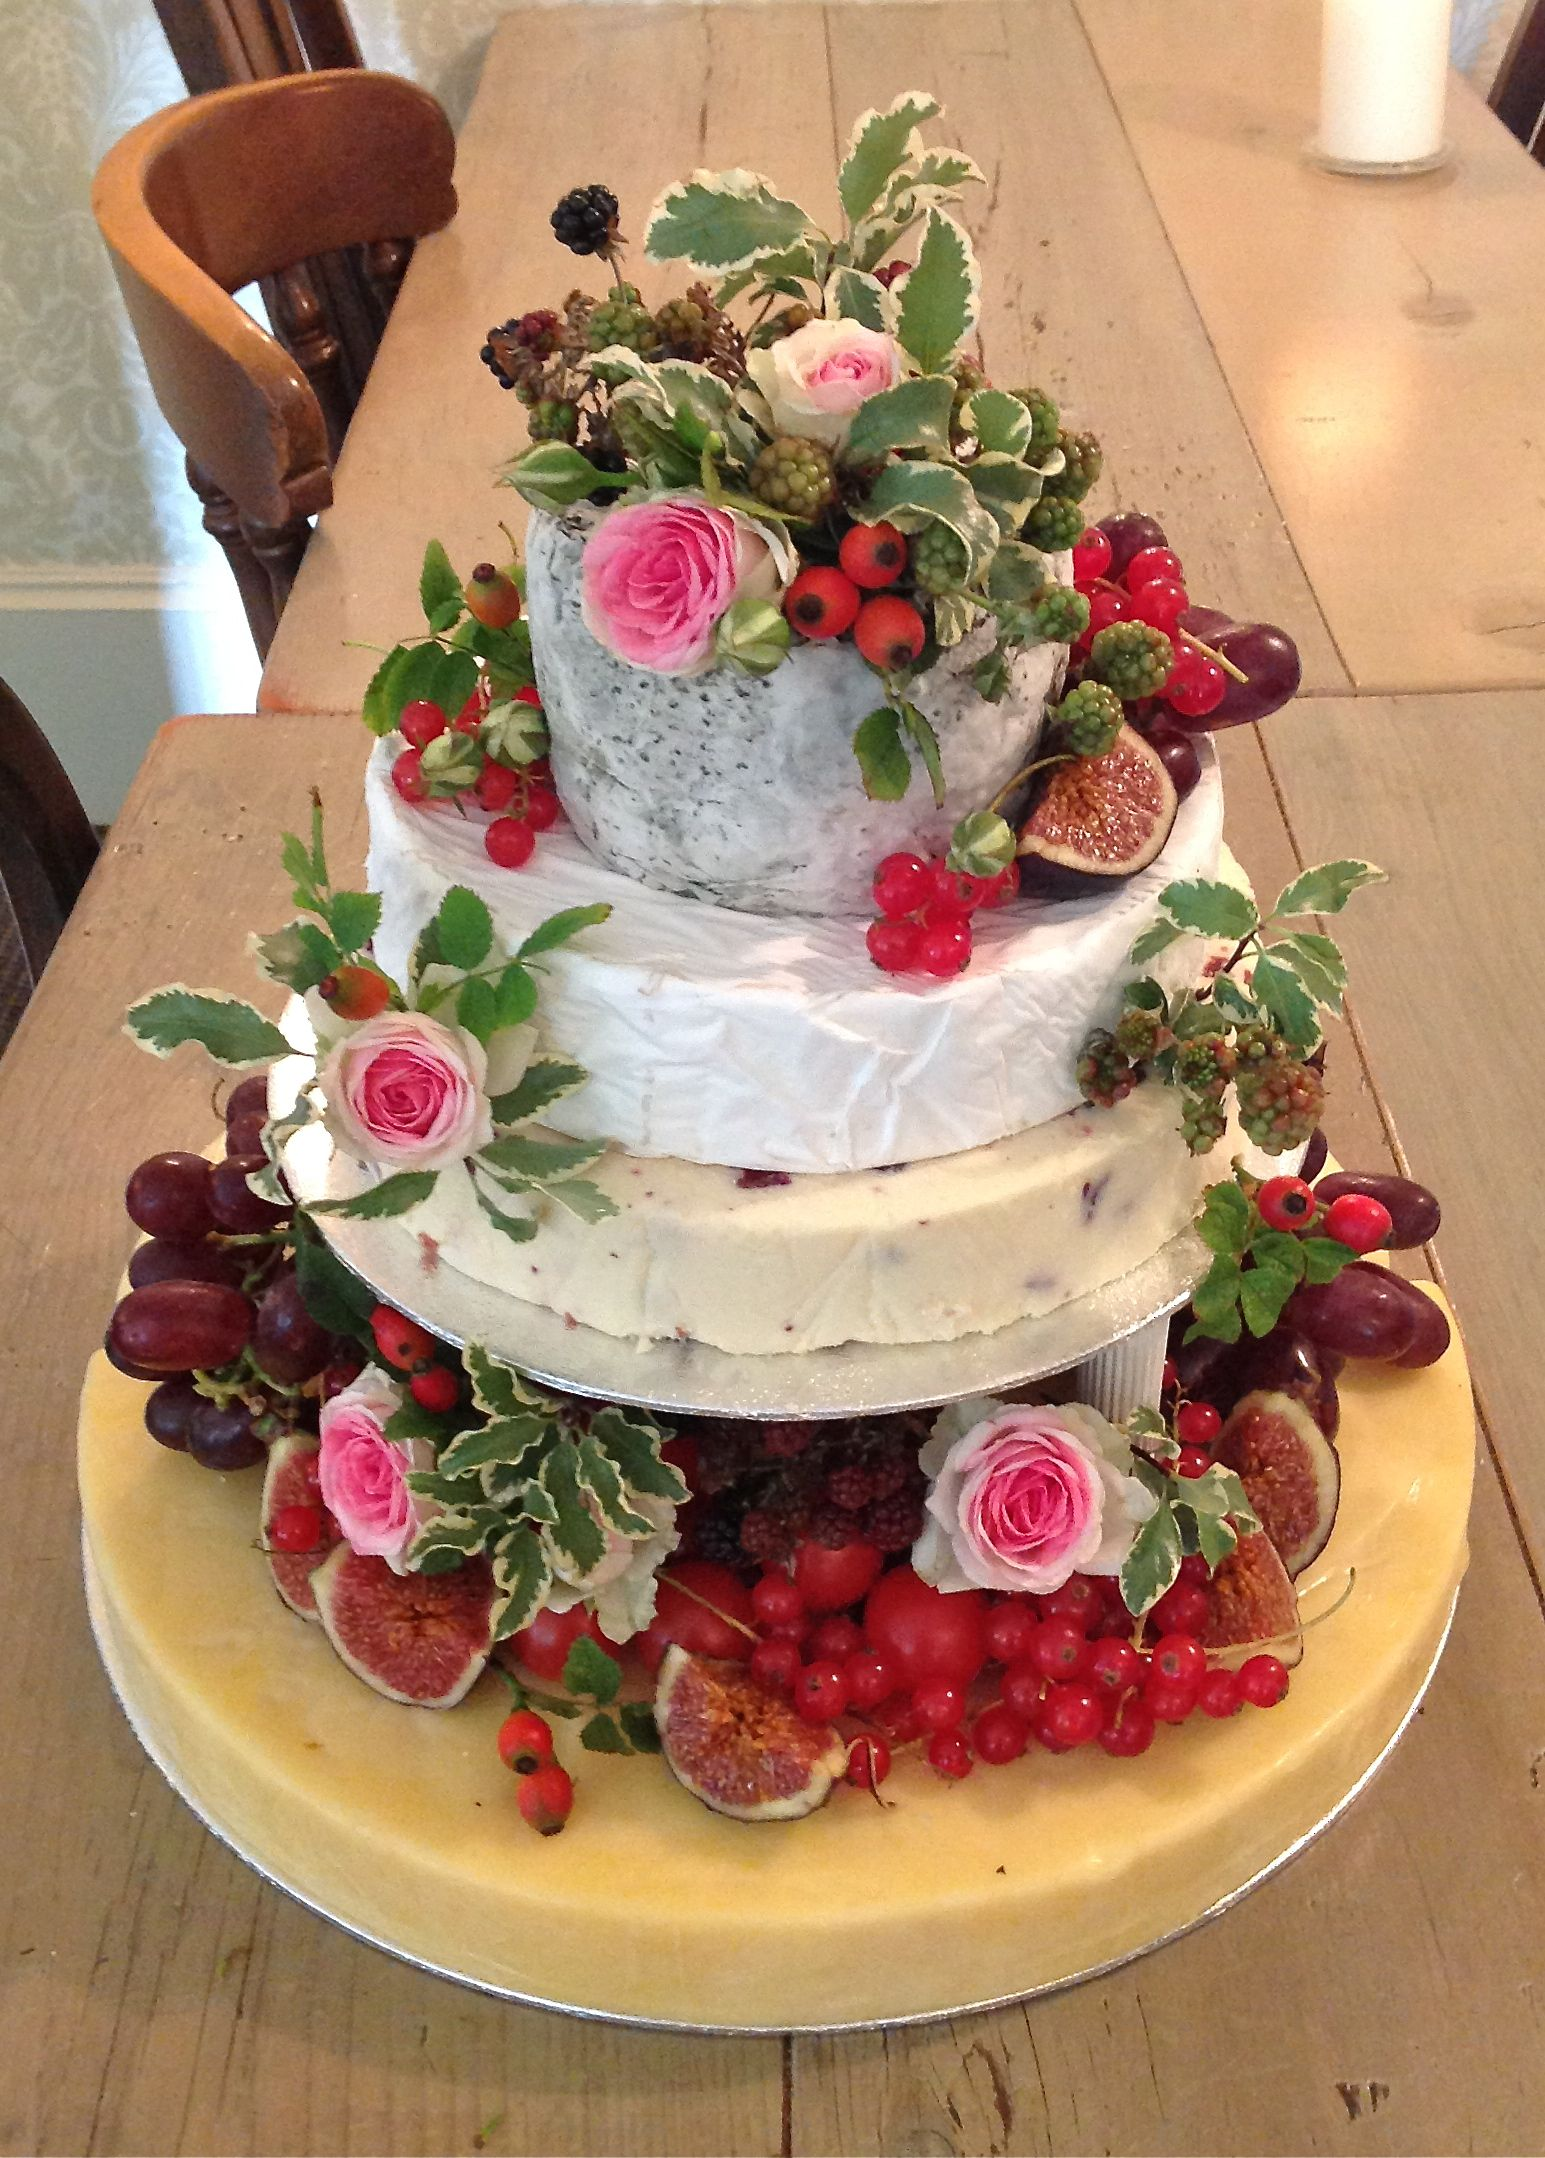 Cheese Wedding Cake Decorated With Fruit And Roses By The Gorgeous